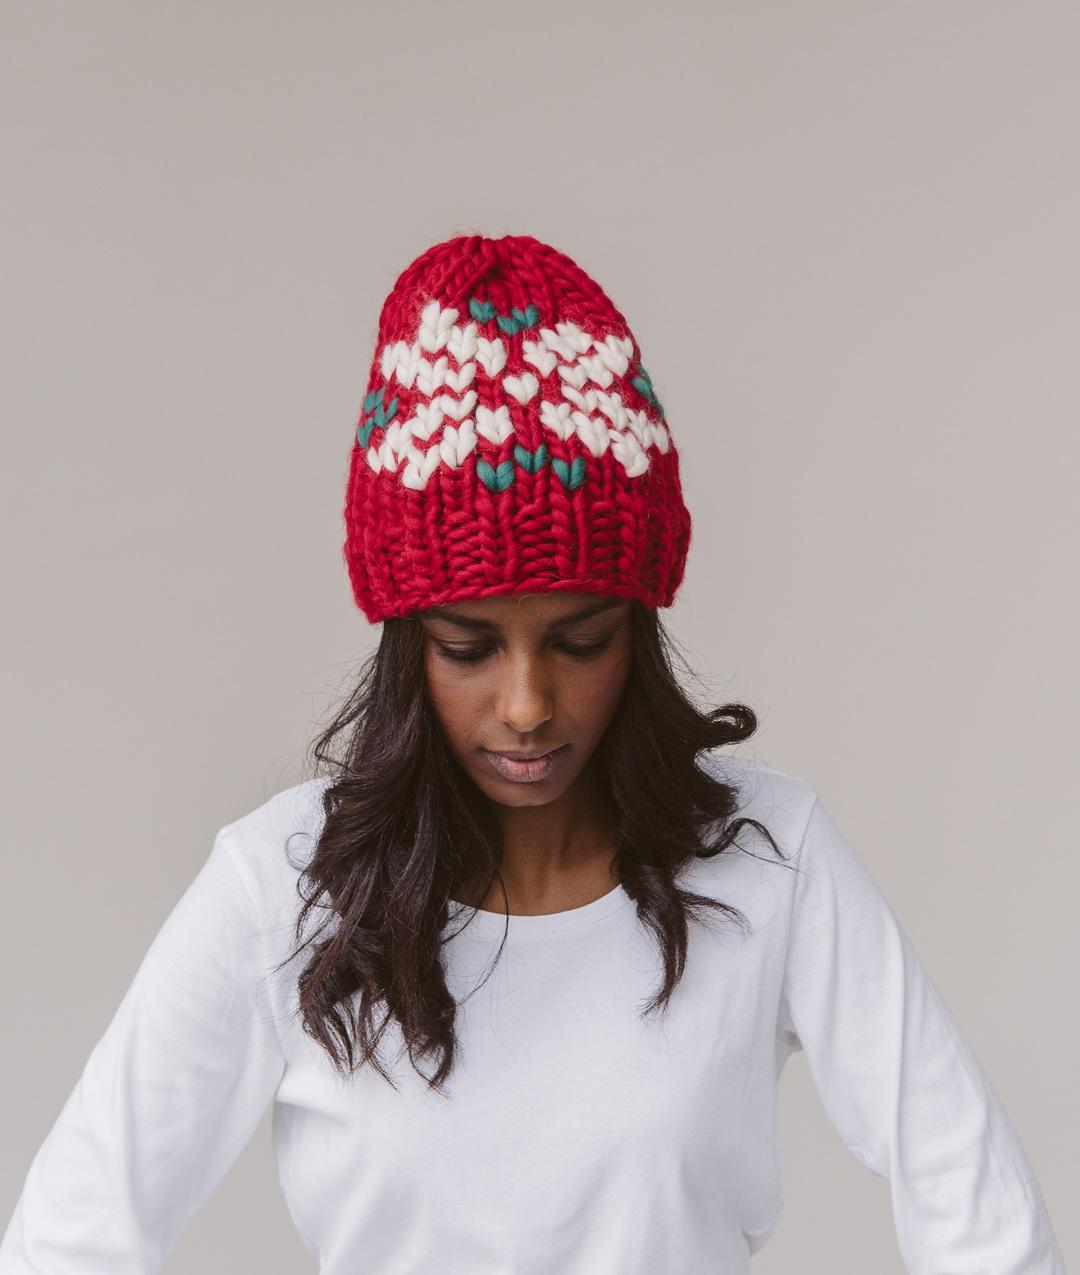 Hats and Beanies - WoolHats and Beanies - Wool - XMAS BEANIE - Edelweiss - 1